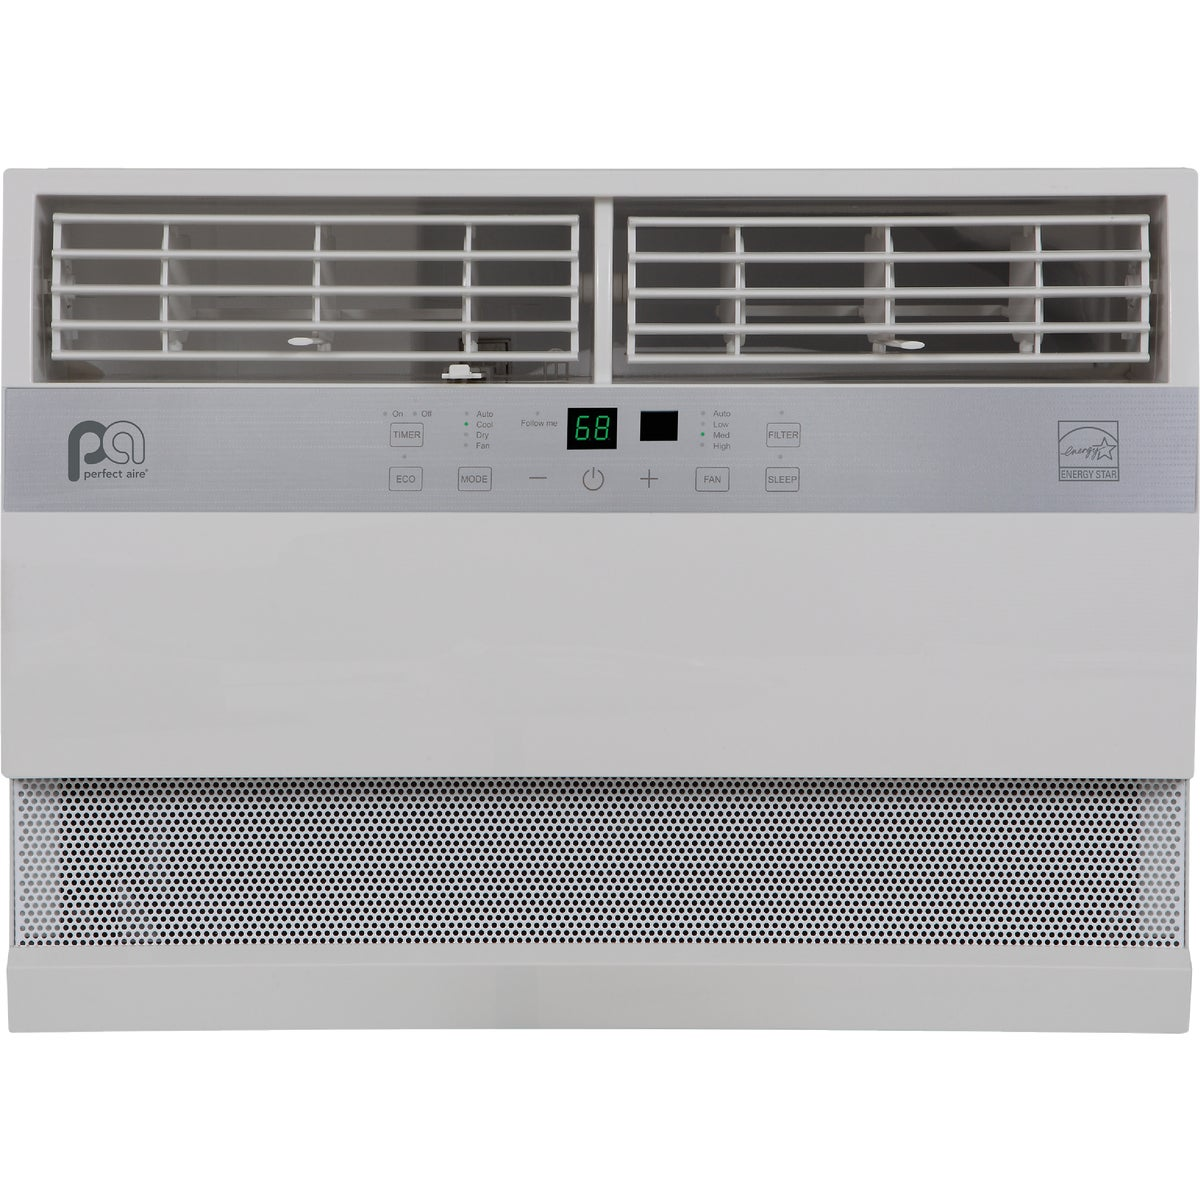 12000BTU AIR CONDITIONER - PAC12000 by Perfect Aire Import